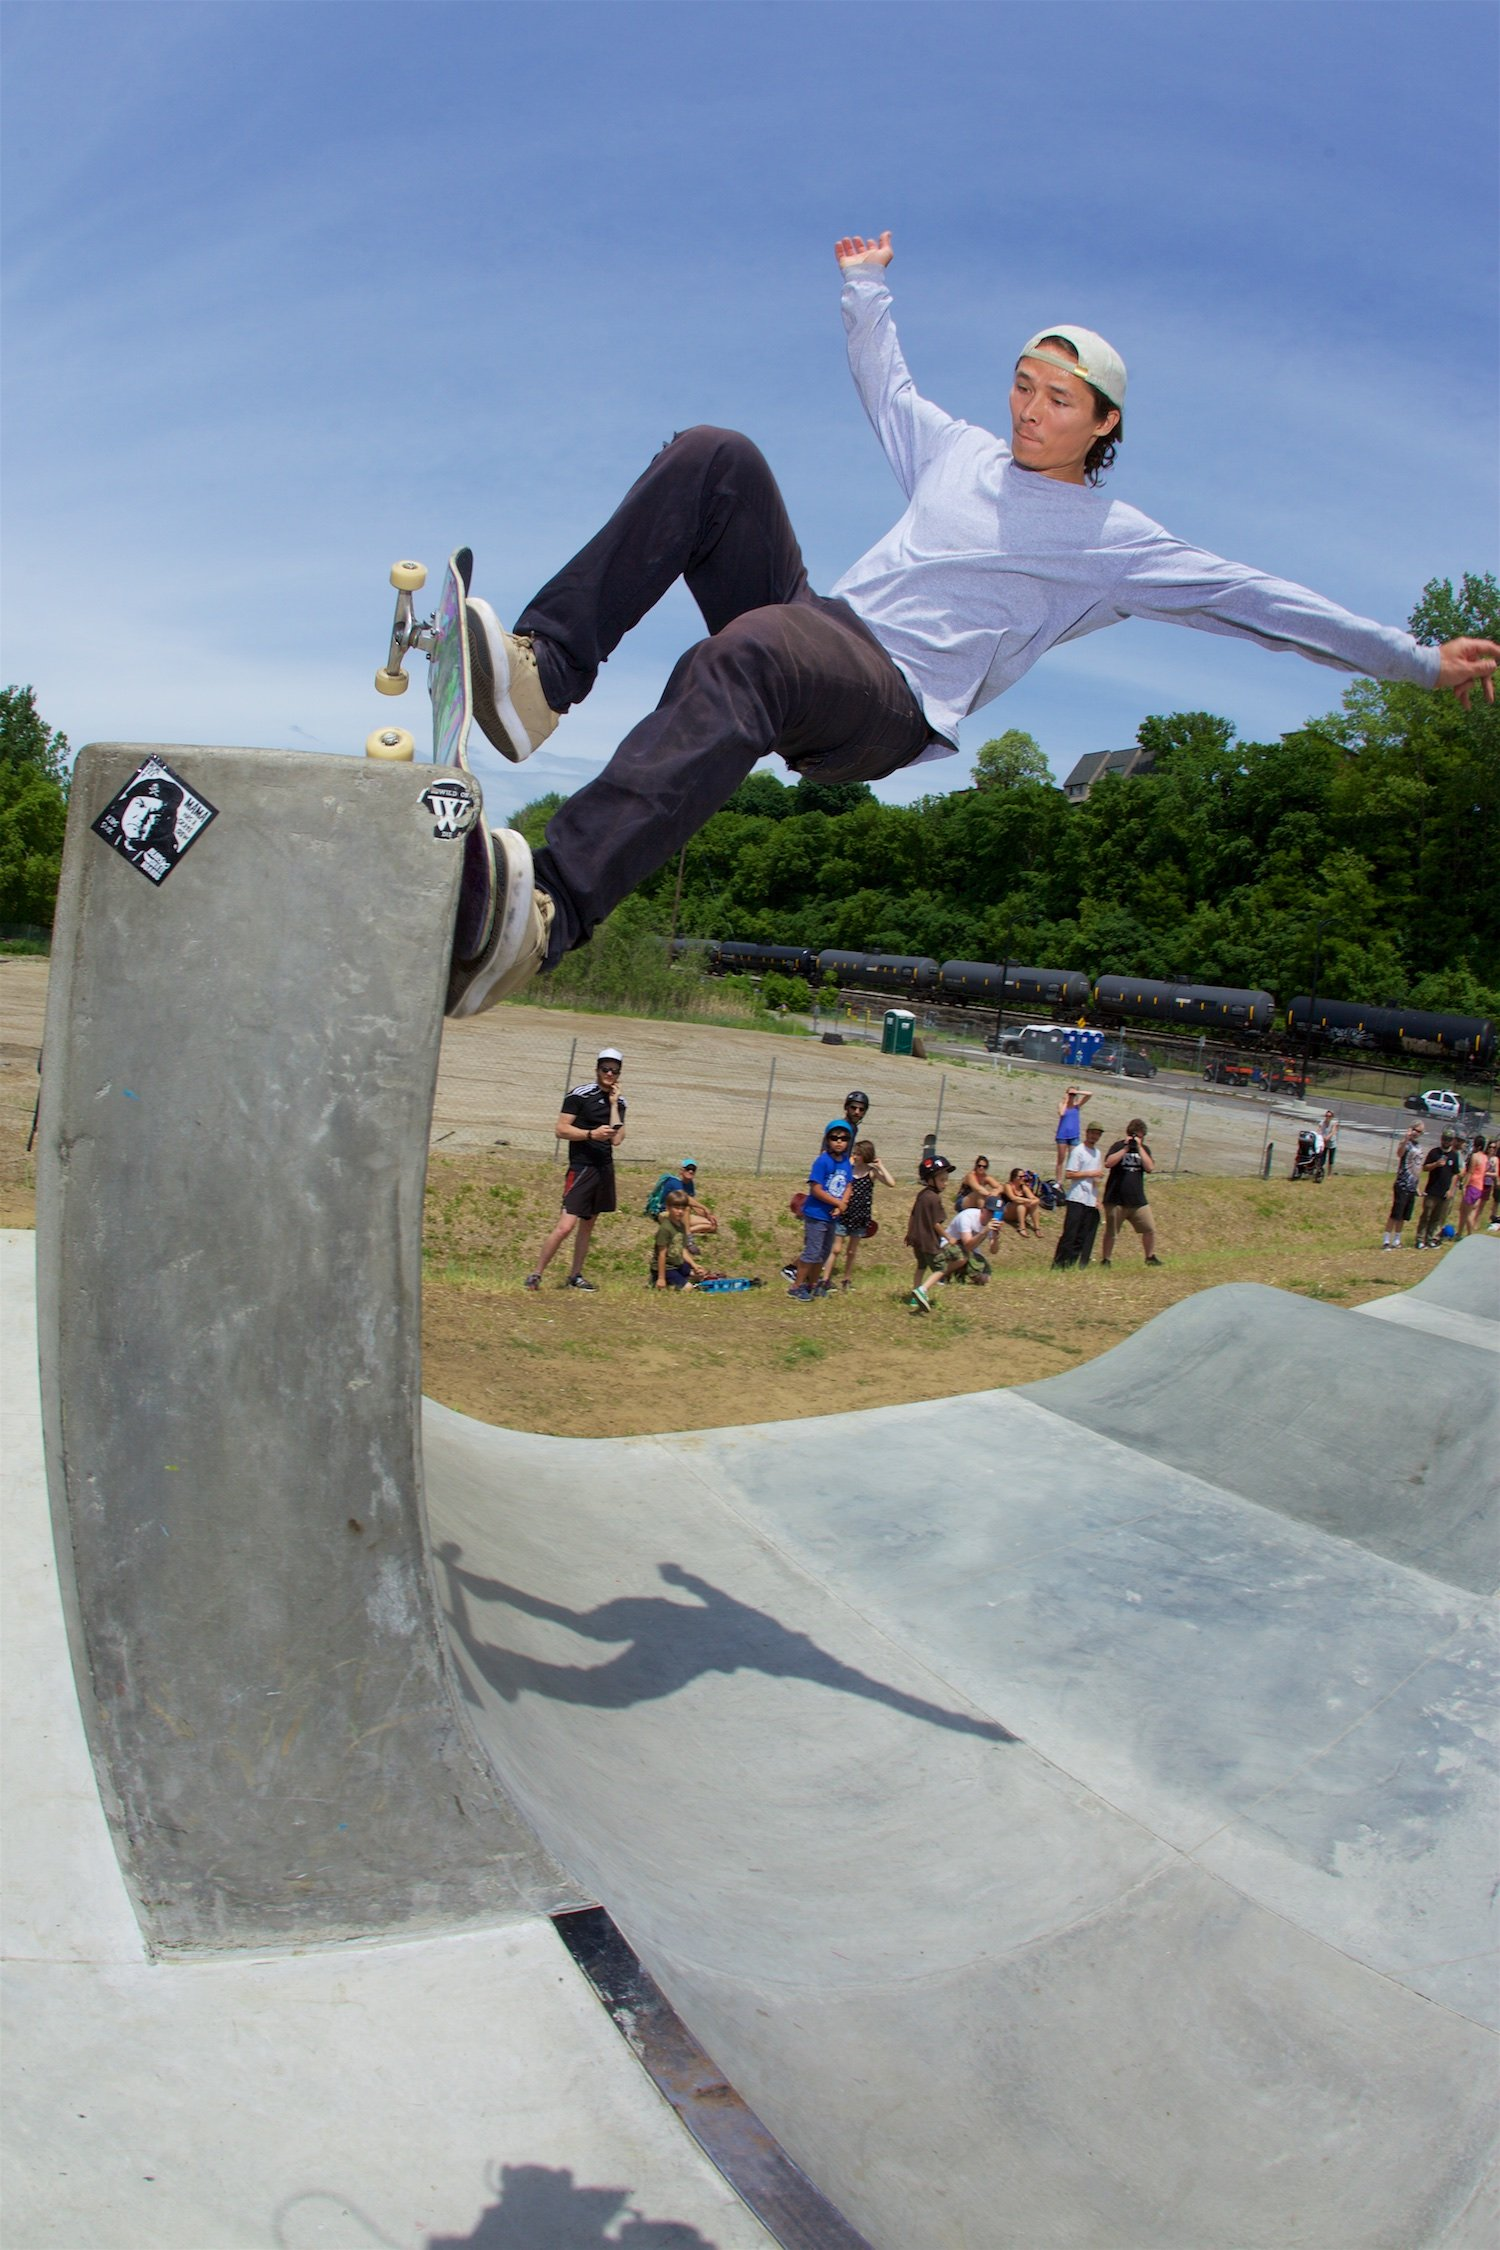 Tony Hawk thanks Burlington for building such a great skatepark. Photo: Jody Morris